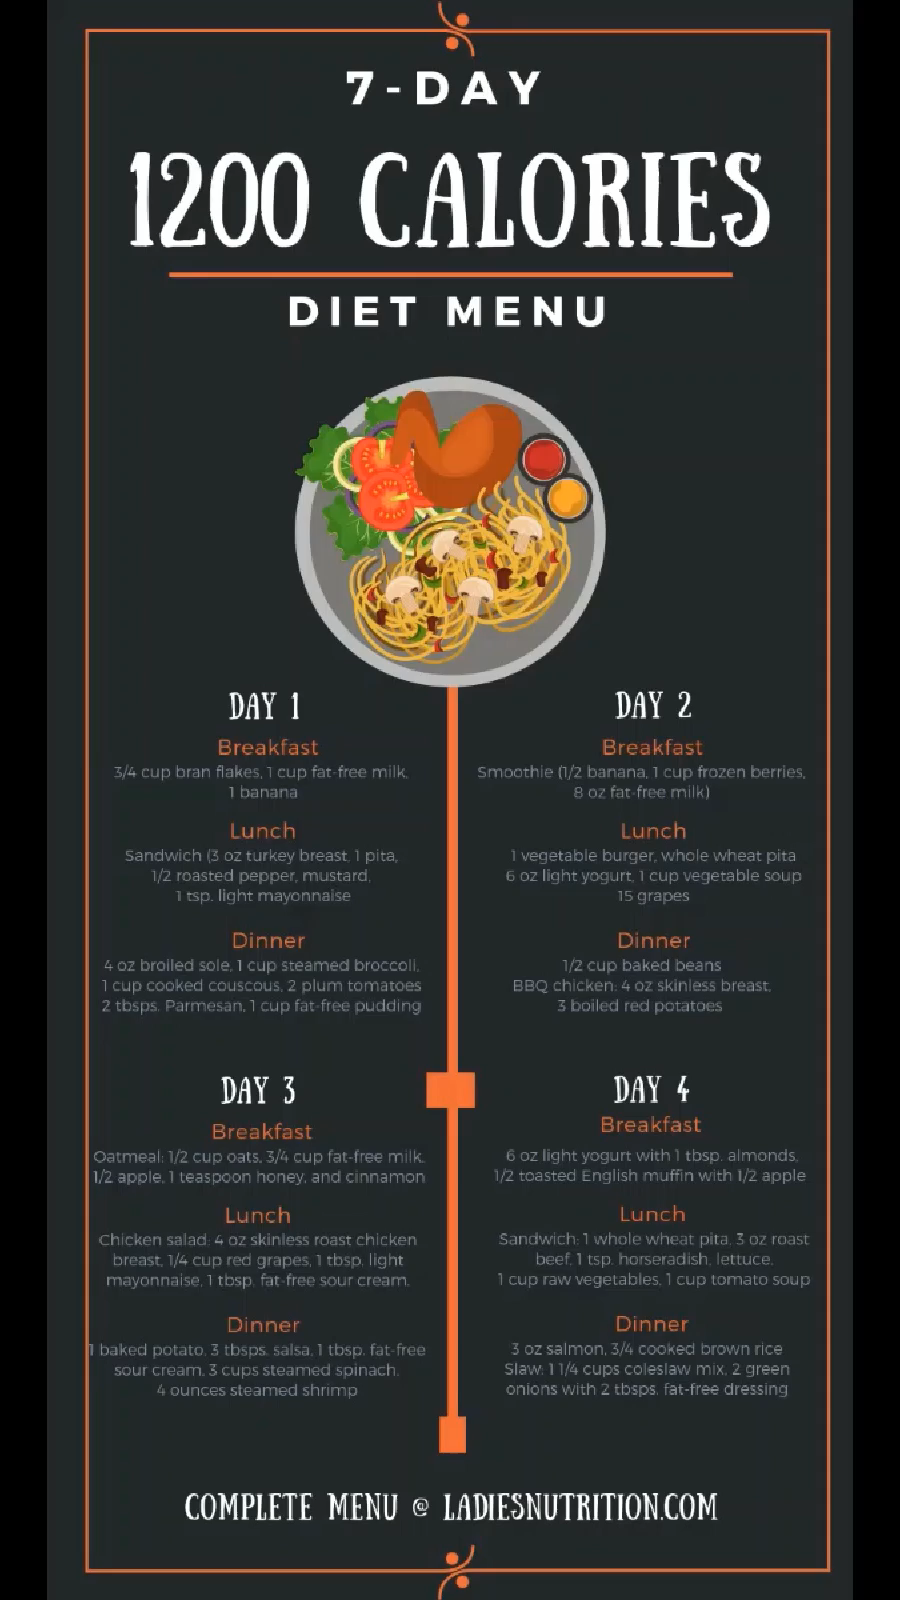 A successful meal plan for losing weight incorporates good diet and exercising. So, here is a 1200 calorie meal plan, for 7 days. This simple 1200 Calories Diet meal plan presents full day's meals — from breakfast to dinner, including snacks — illustrates how satisfying 1,200 calories can be as you embark on a successful weight loss journey.